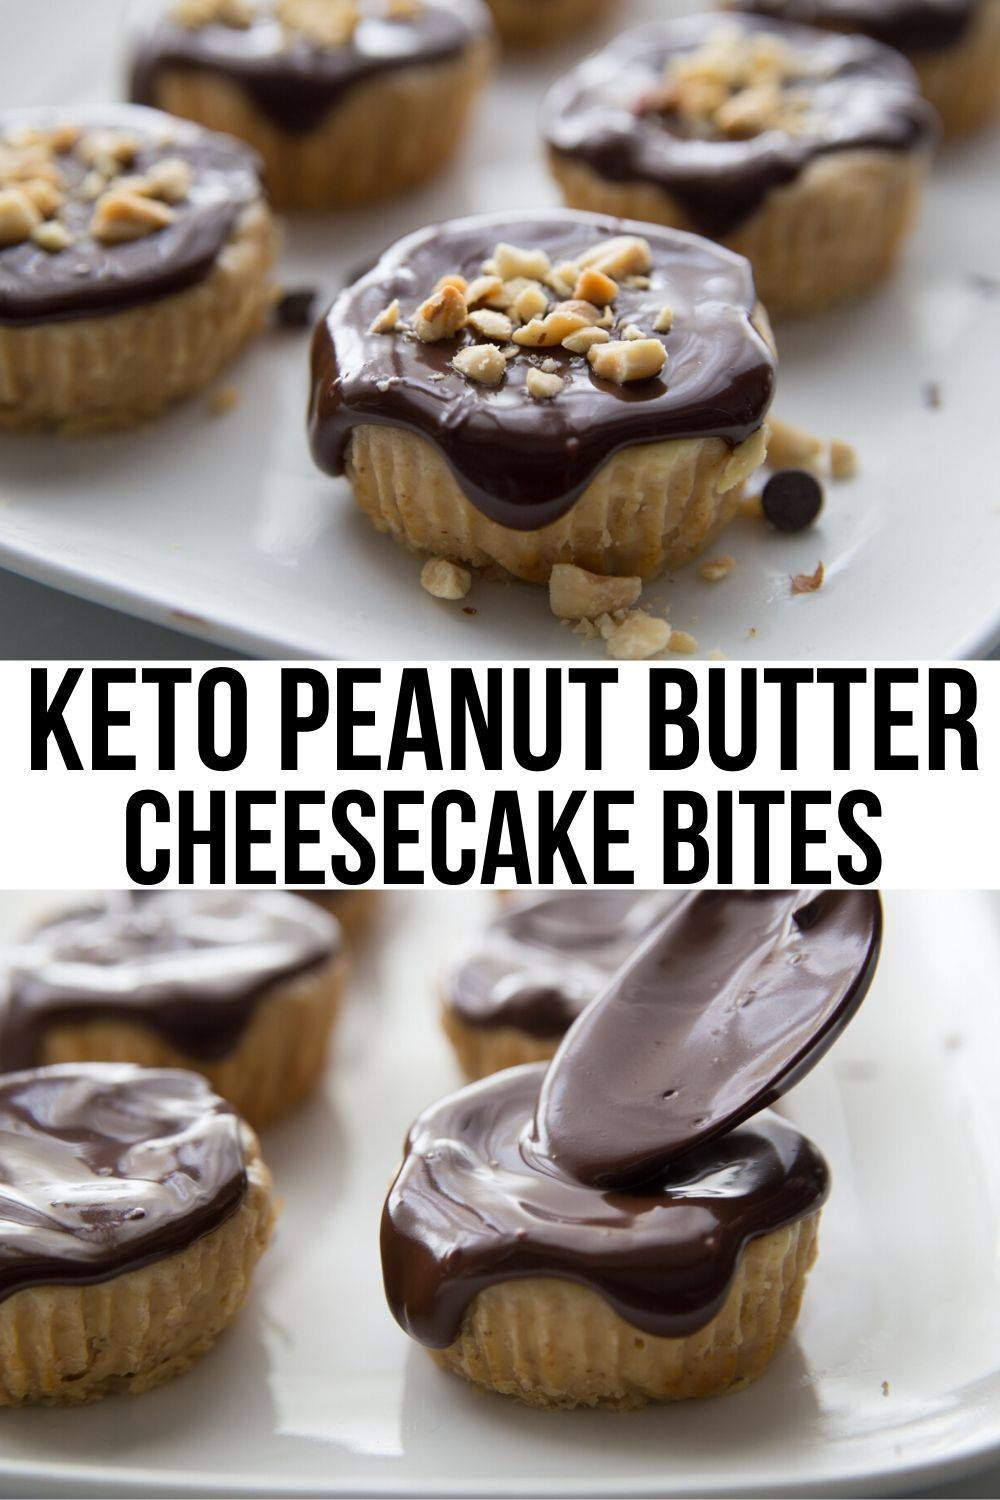 crustless cheesecake bites with two images on cheesecakes topped with chocolate sauce